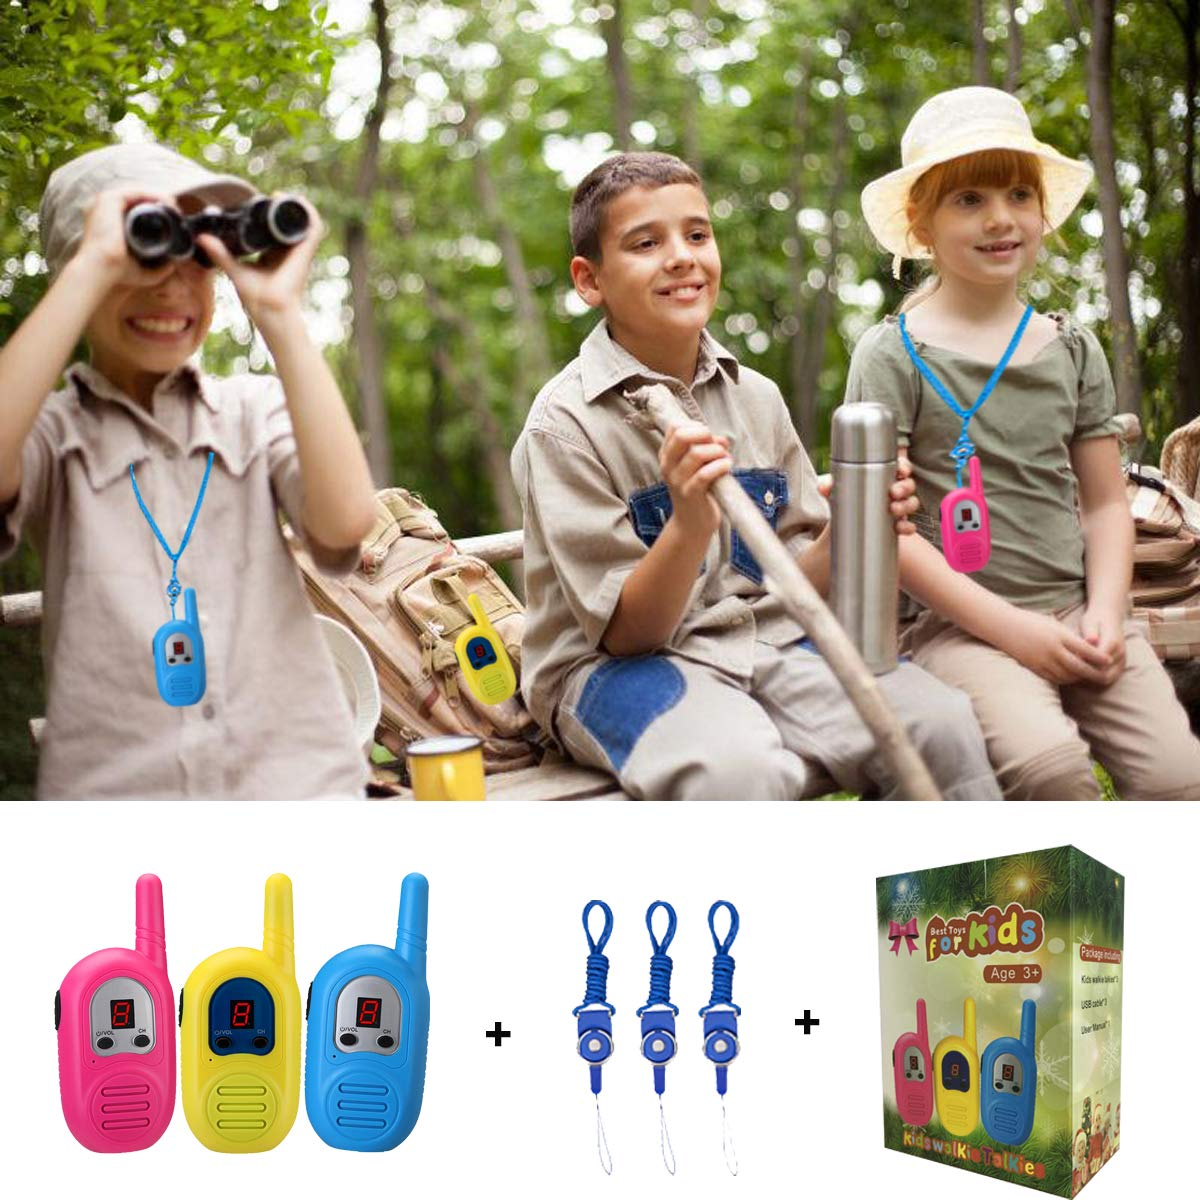 inYYTer Walkie Talkies for Kids 3 Pack, 2 Mile FRS Walkie Talkies with Rugged Sports Design , Micro USB Rechargeable Kids Walkie Talkies, 2 Way Radio Toy for Outdoor Games, Hiking, Birthday Gifts by inYYTer (Image #8)